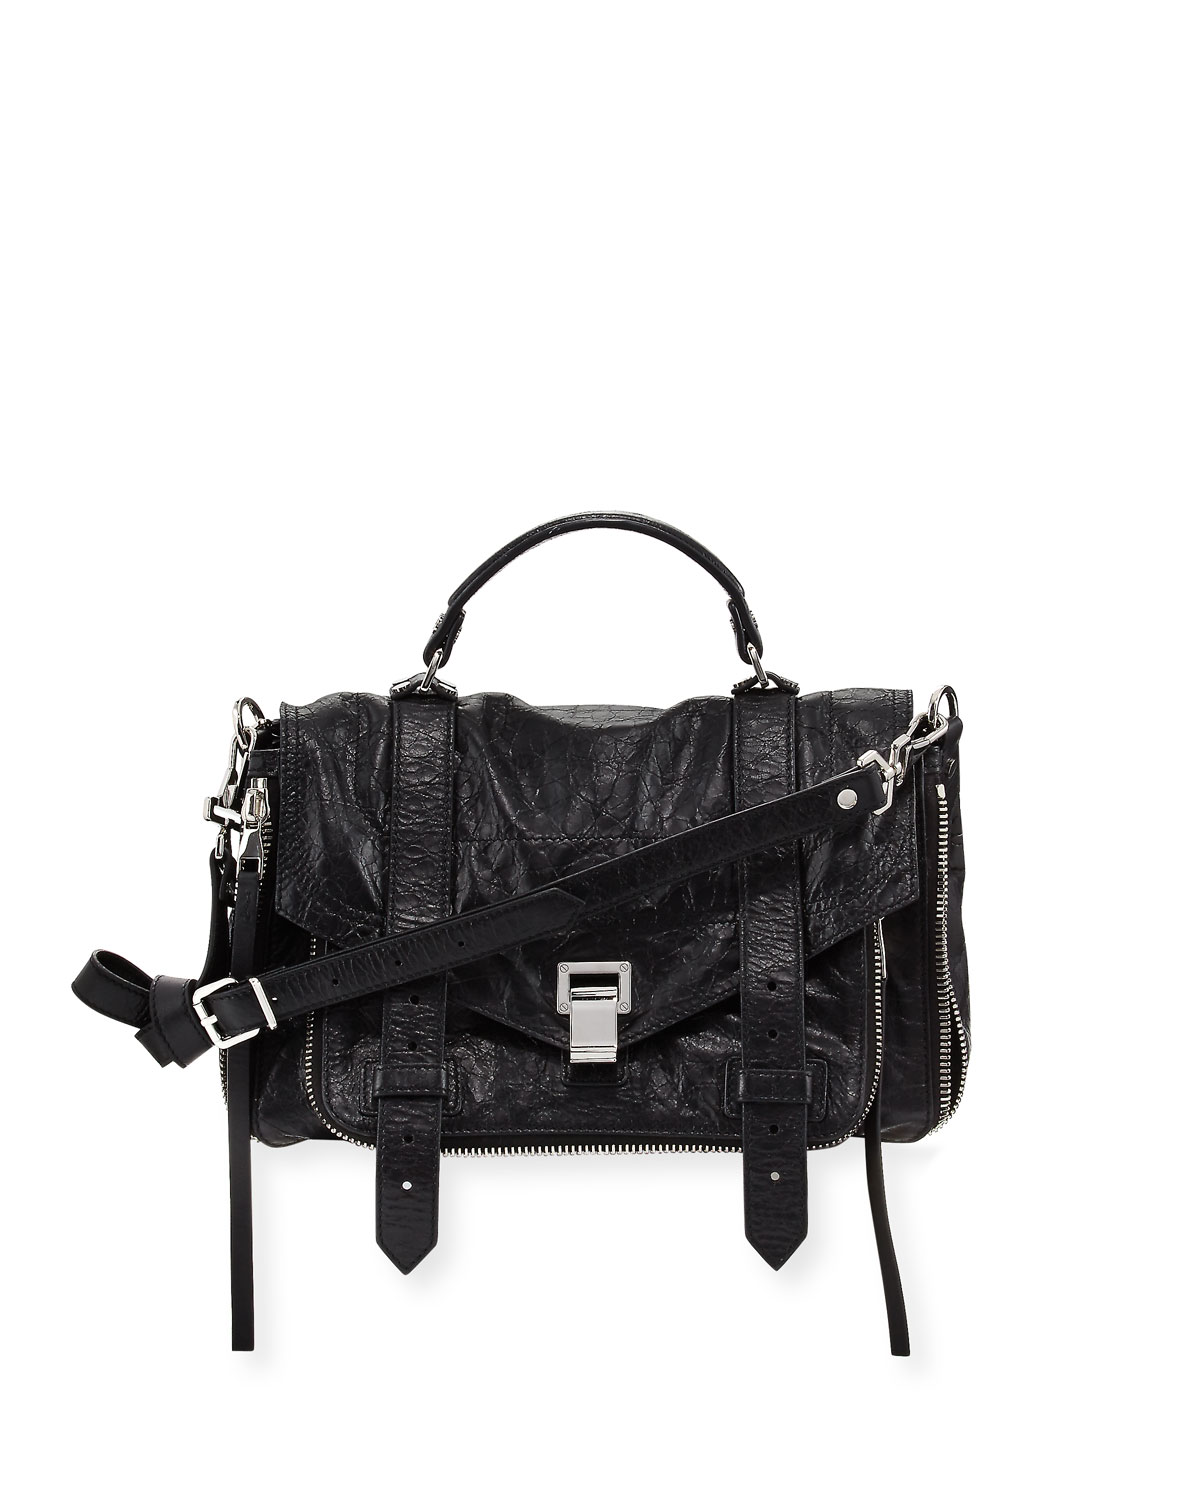 Ps1+ Medium Leather Satchel Bag, Black by Proenza Schouler